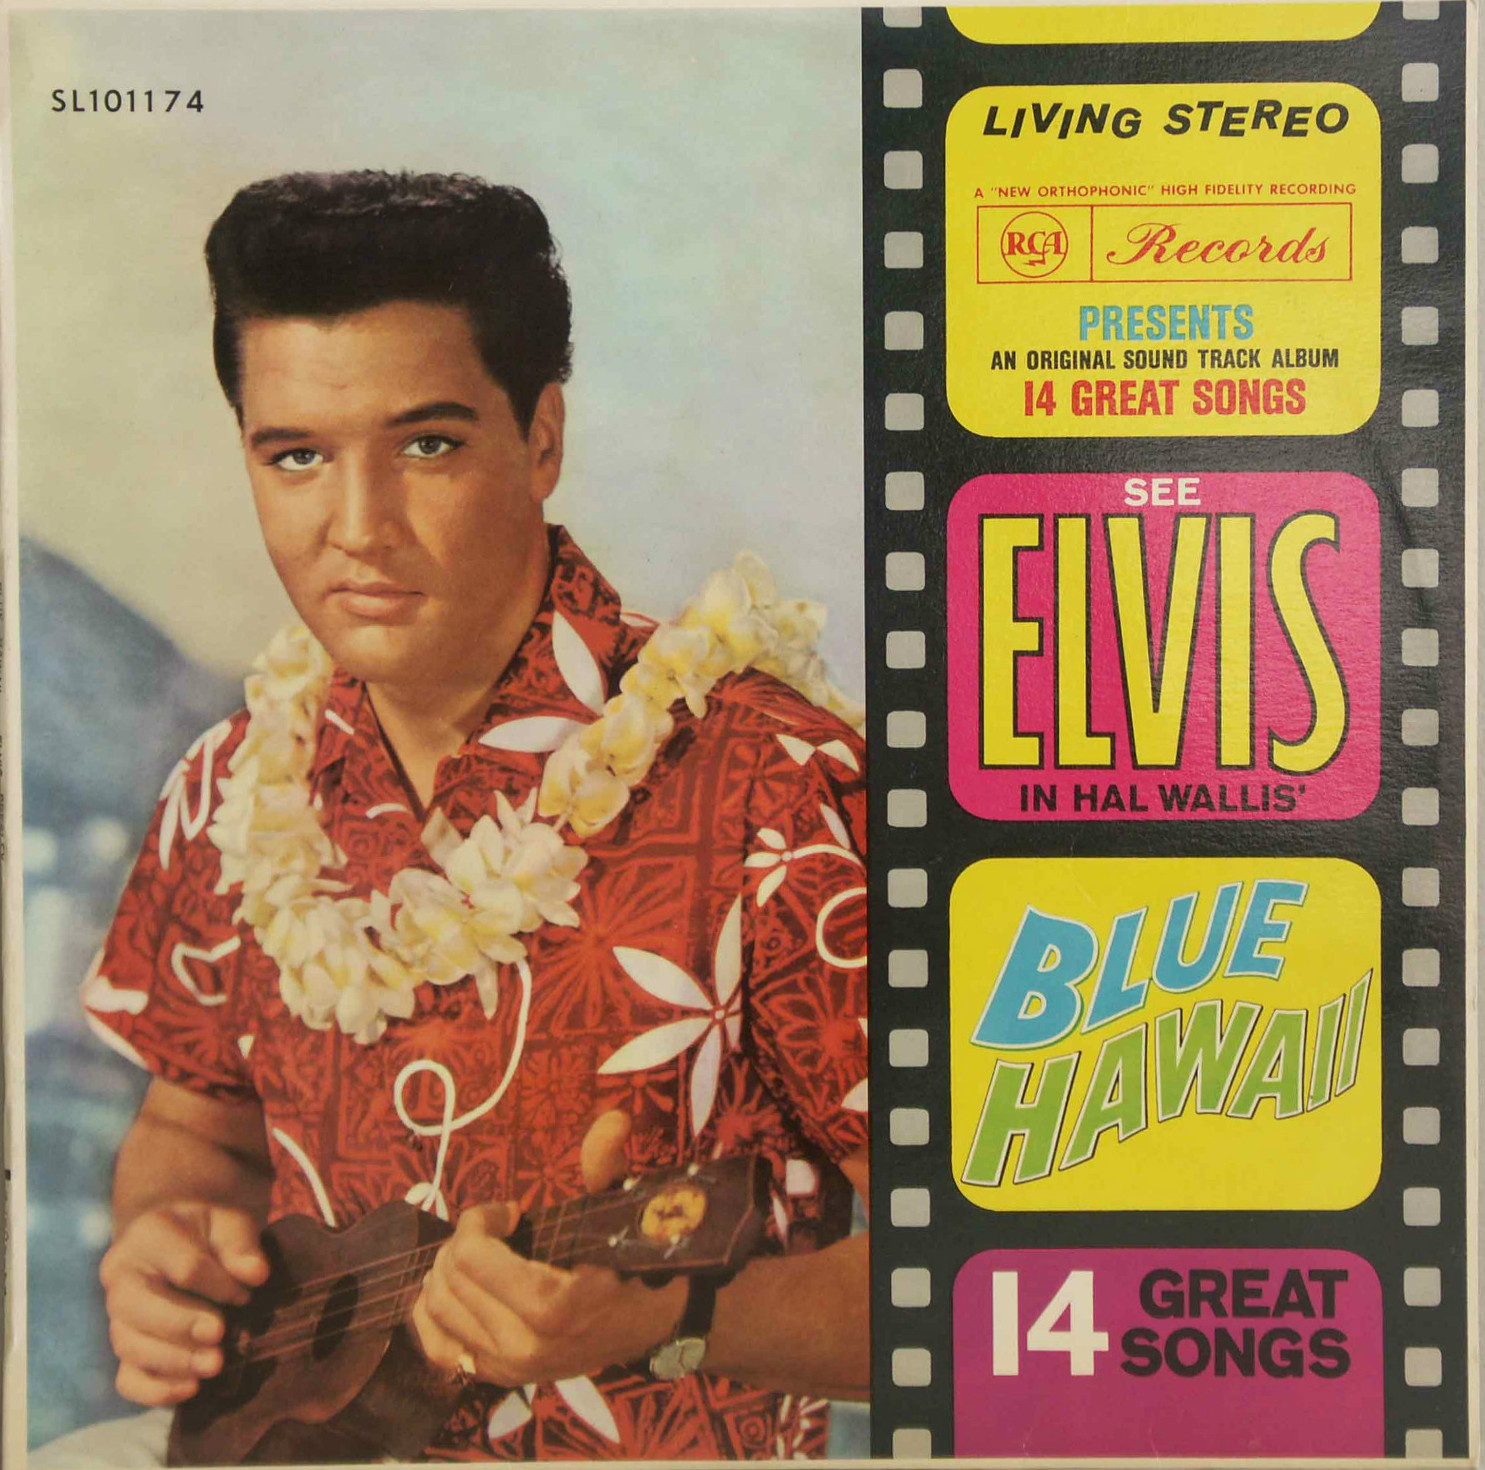 Hawaii - BLUE HAWAII Sl101174a74i9h